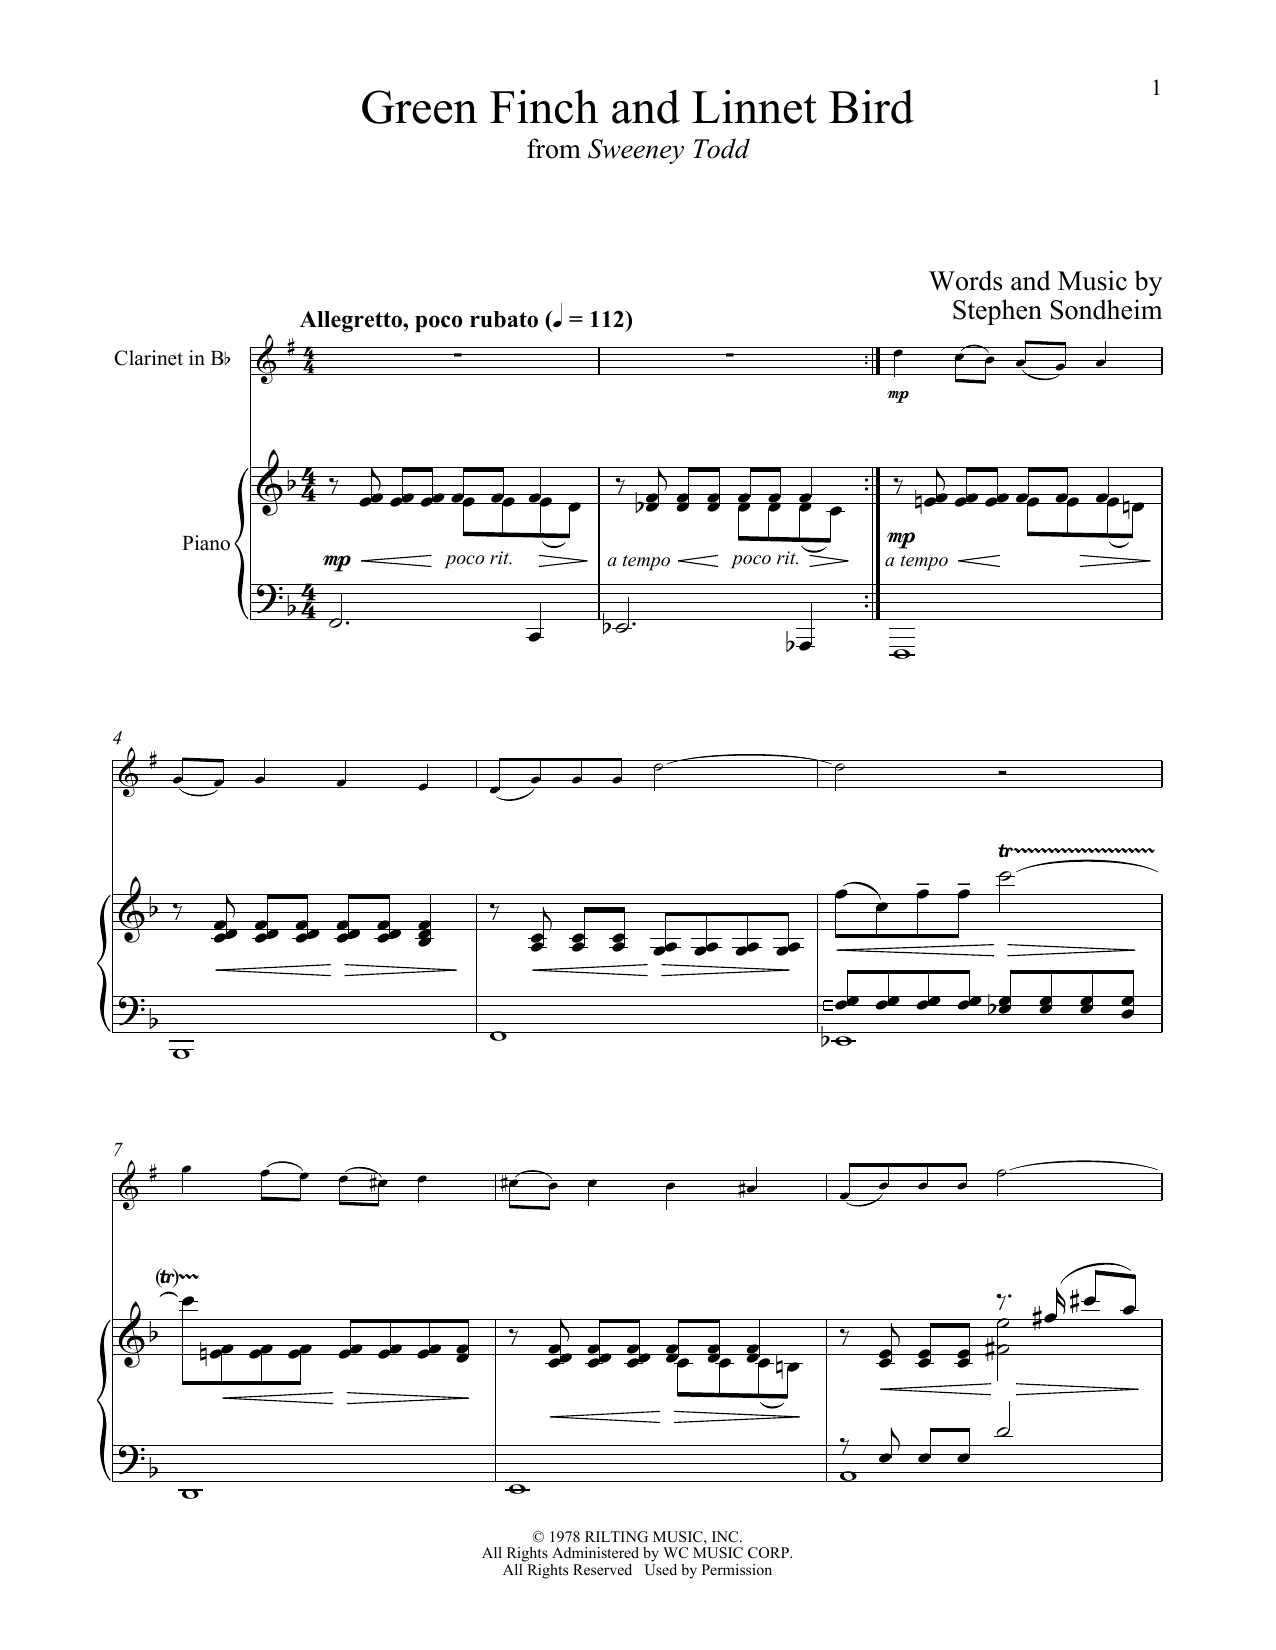 Stephen Sondheim Green Finch And Linnet Bird (from Sweeney Todd) sheet music notes and chords. Download Printable PDF.